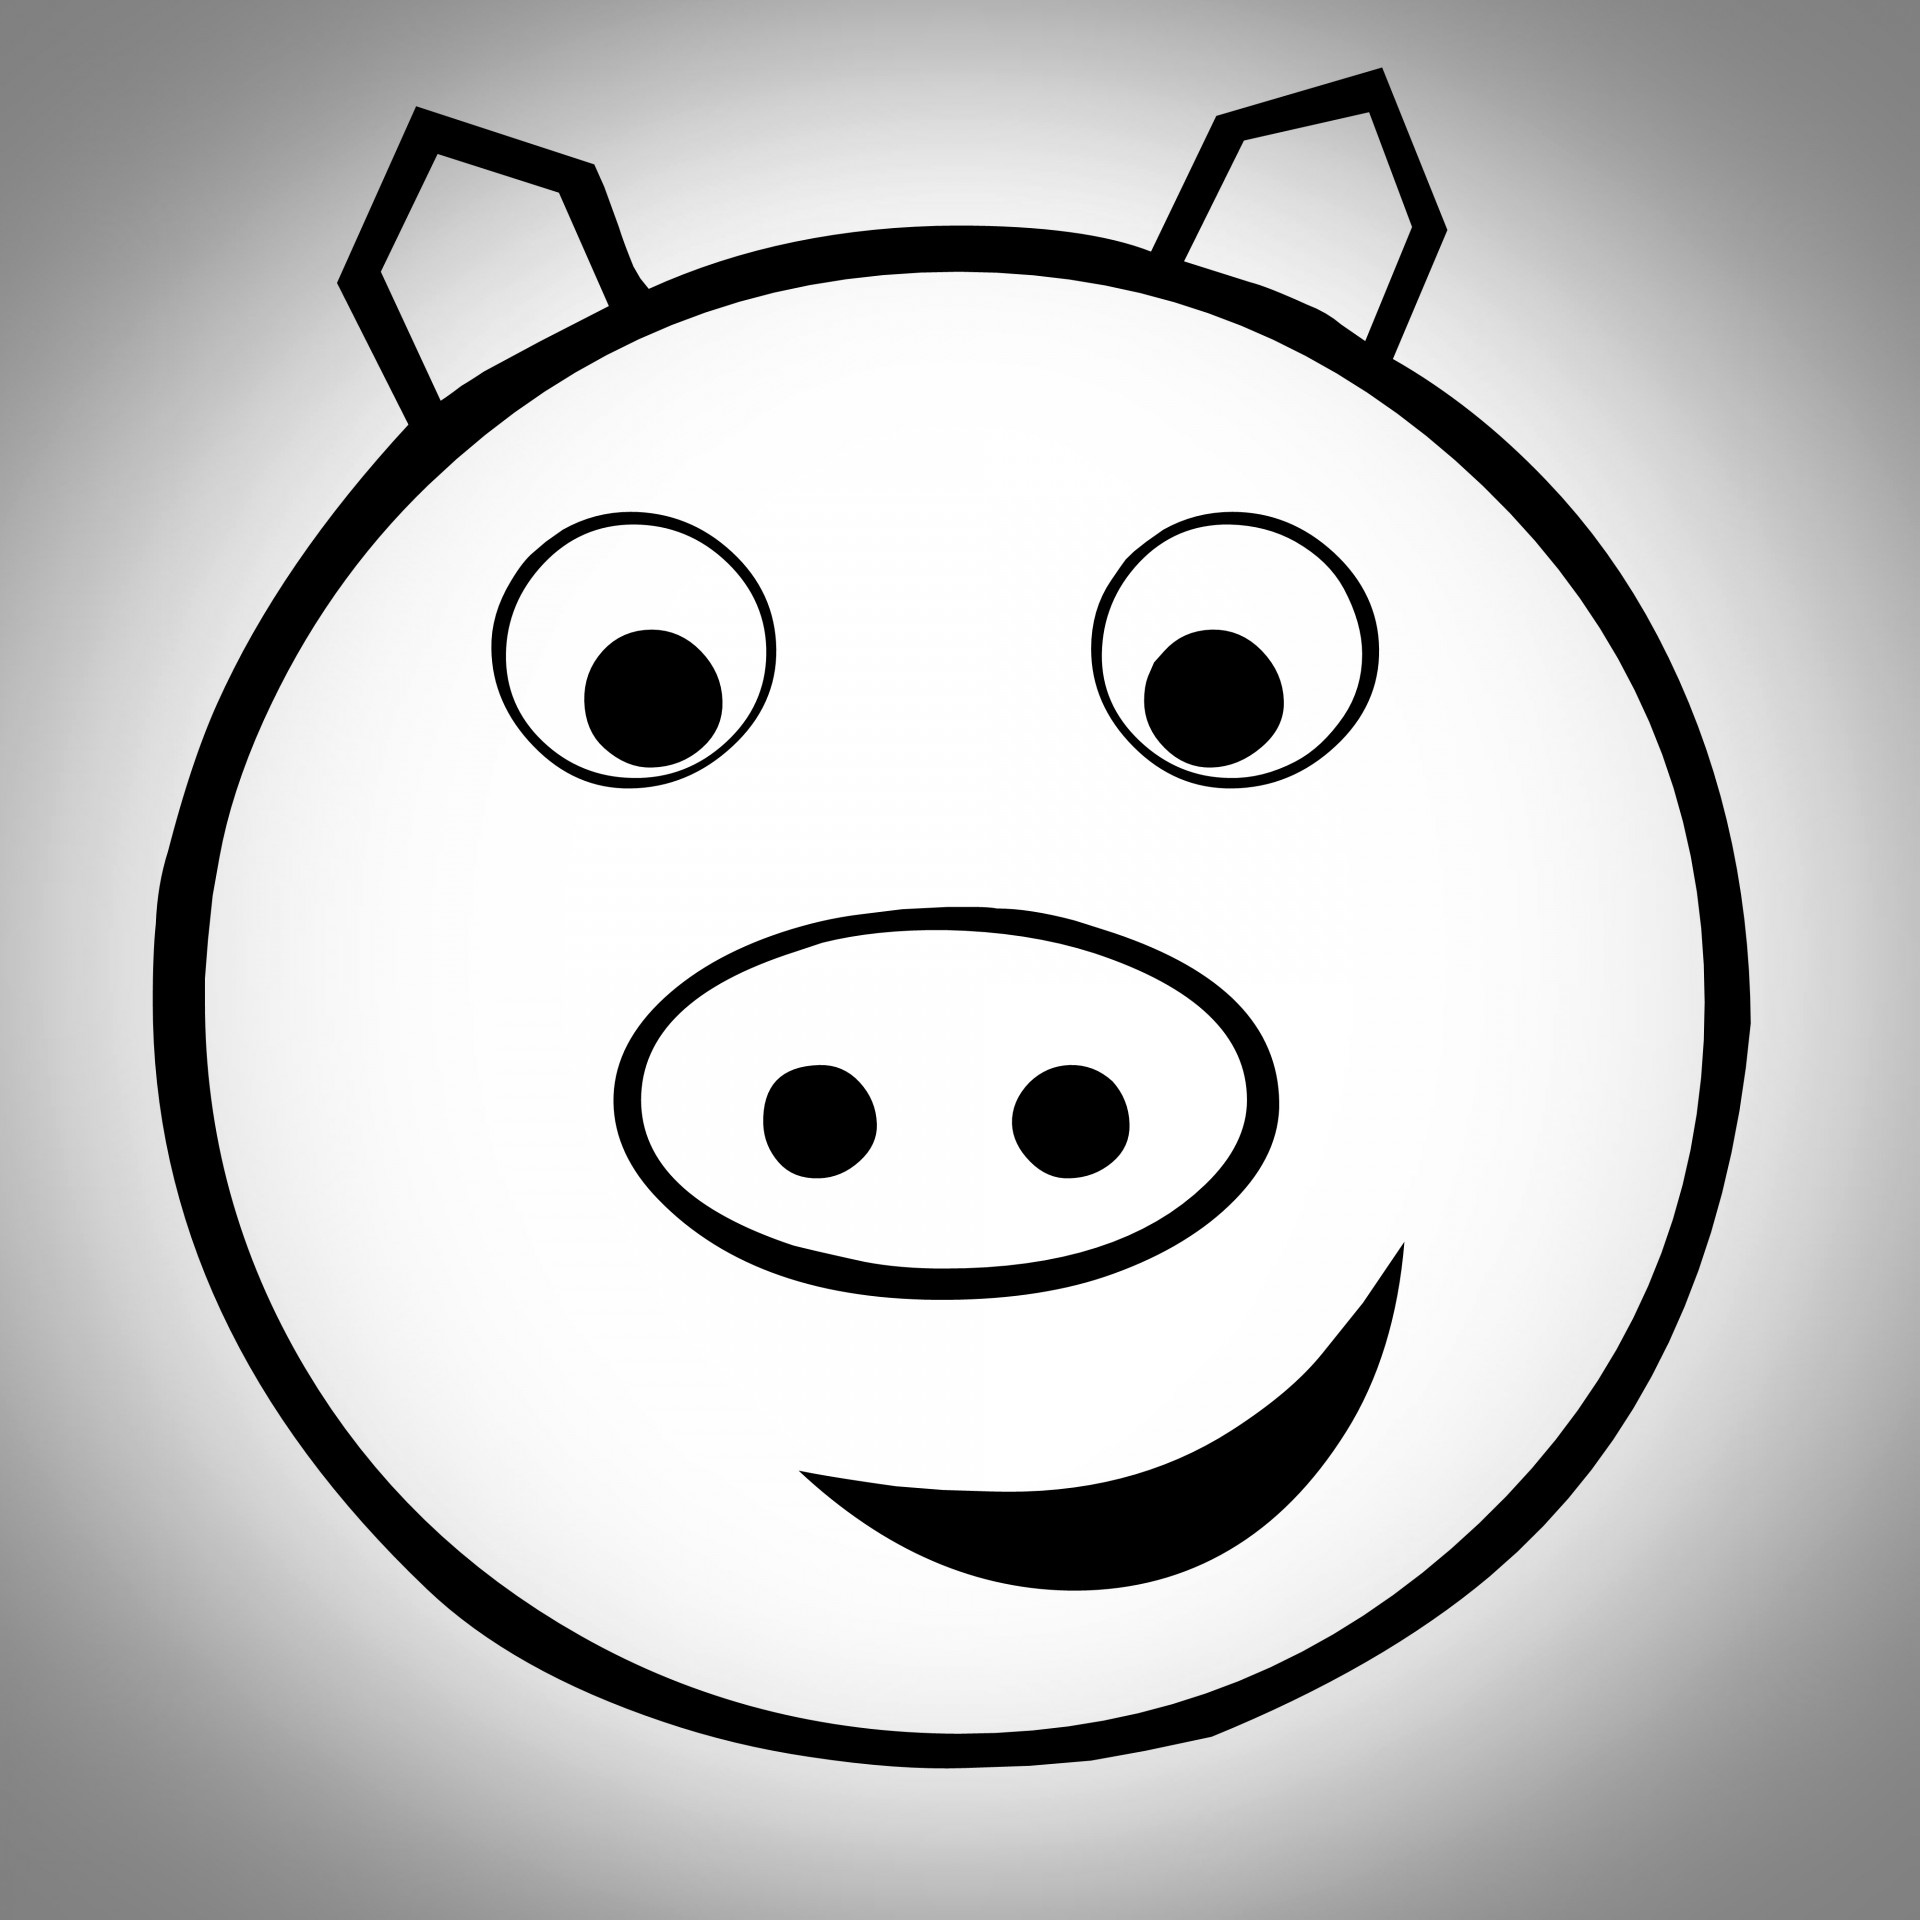 1920x1920 Drawing, Grey, Pig, Face, Vignette